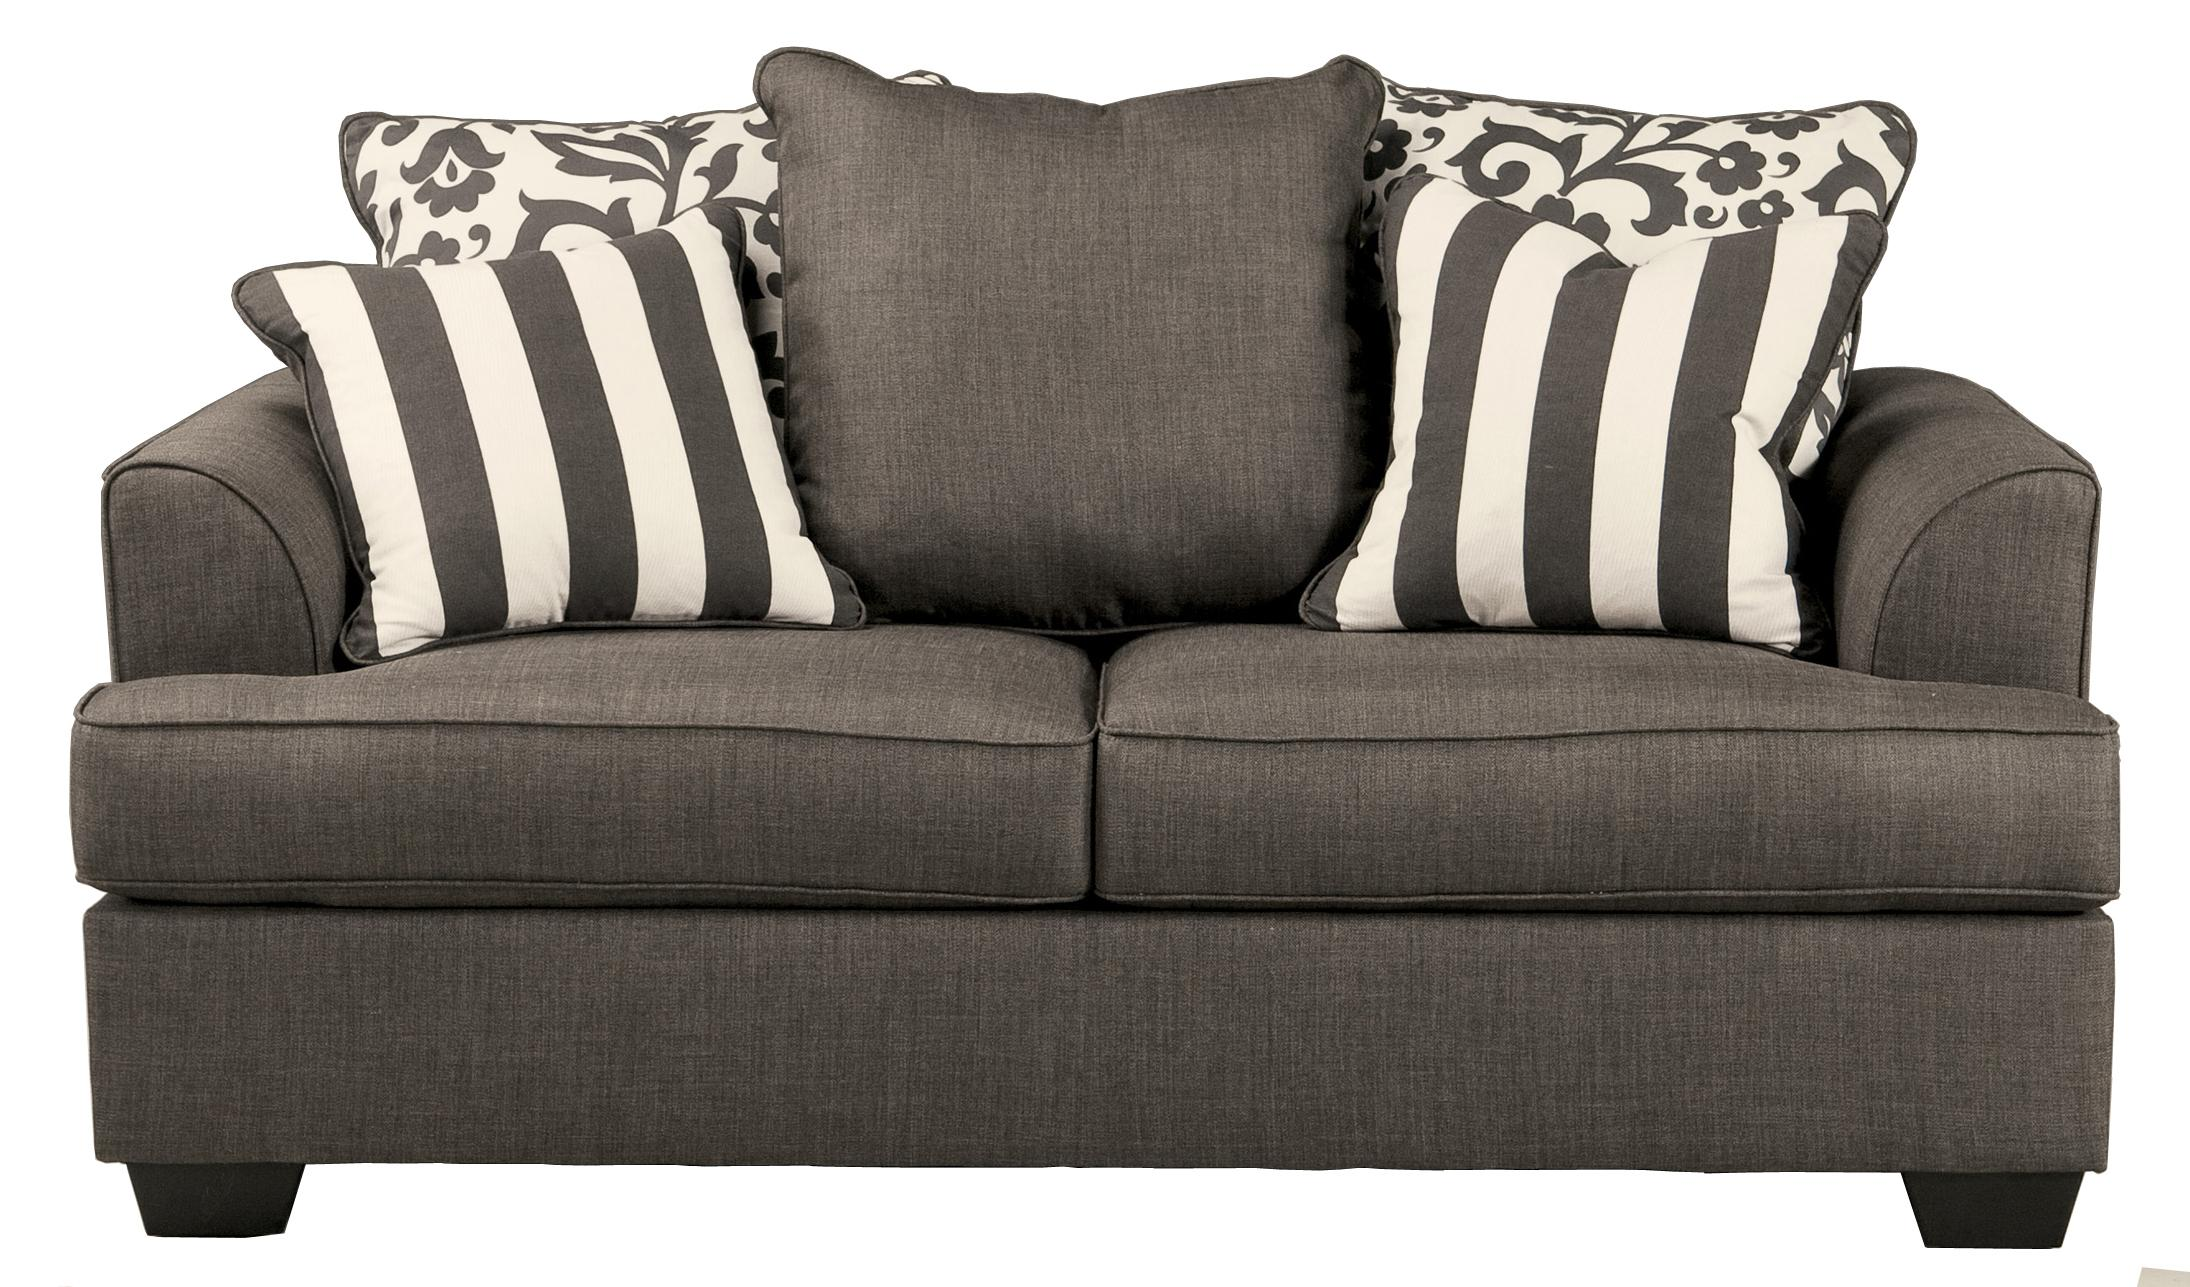 Signature Design by Ashley Levon - Charcoal Loveseat - Item Number: 7340335